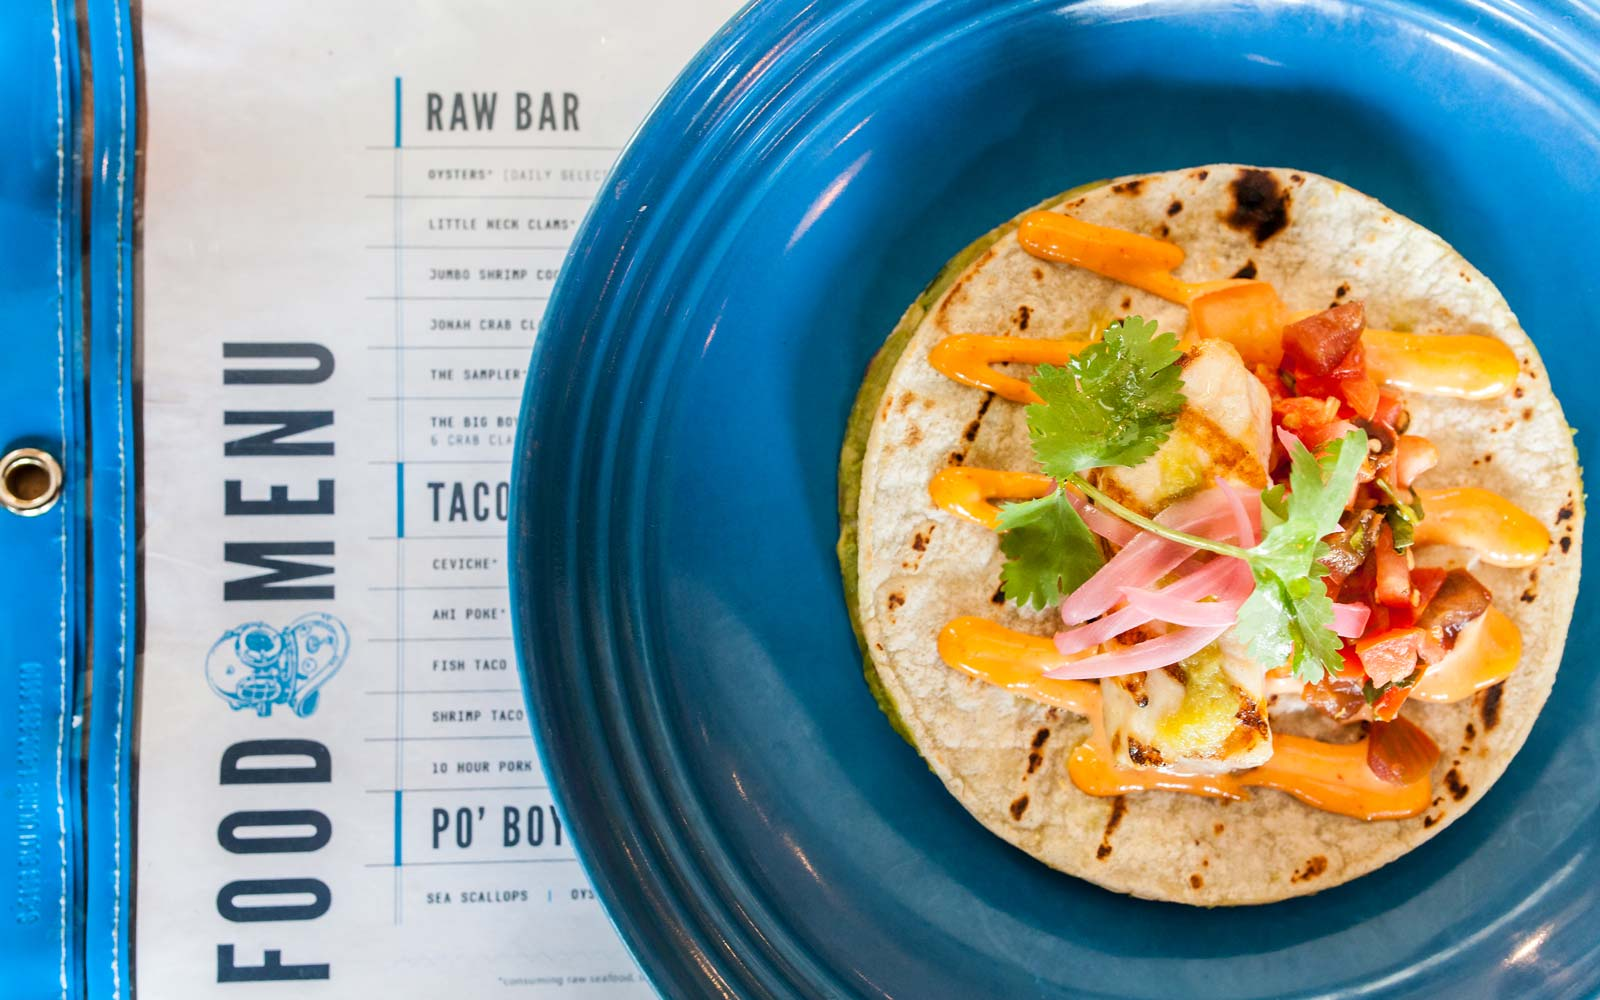 Where to find the best tacos in the U.S.